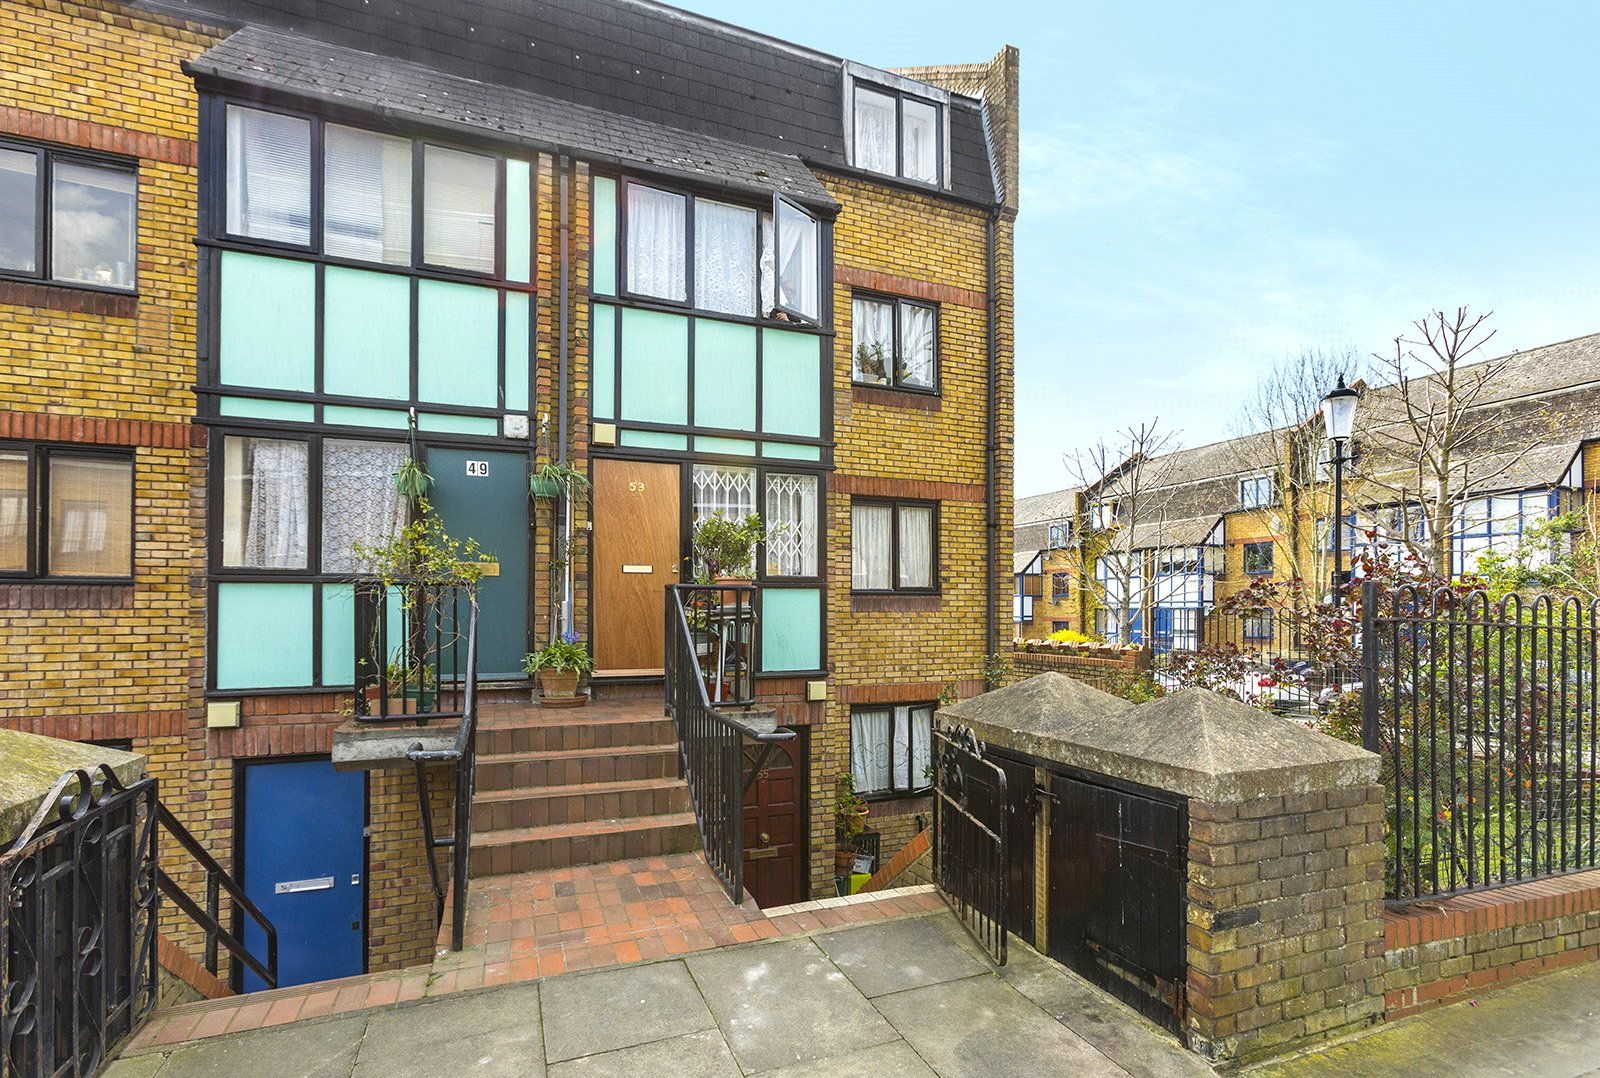 2 Bedroom Flat For Sale In Wornington Road W10 London